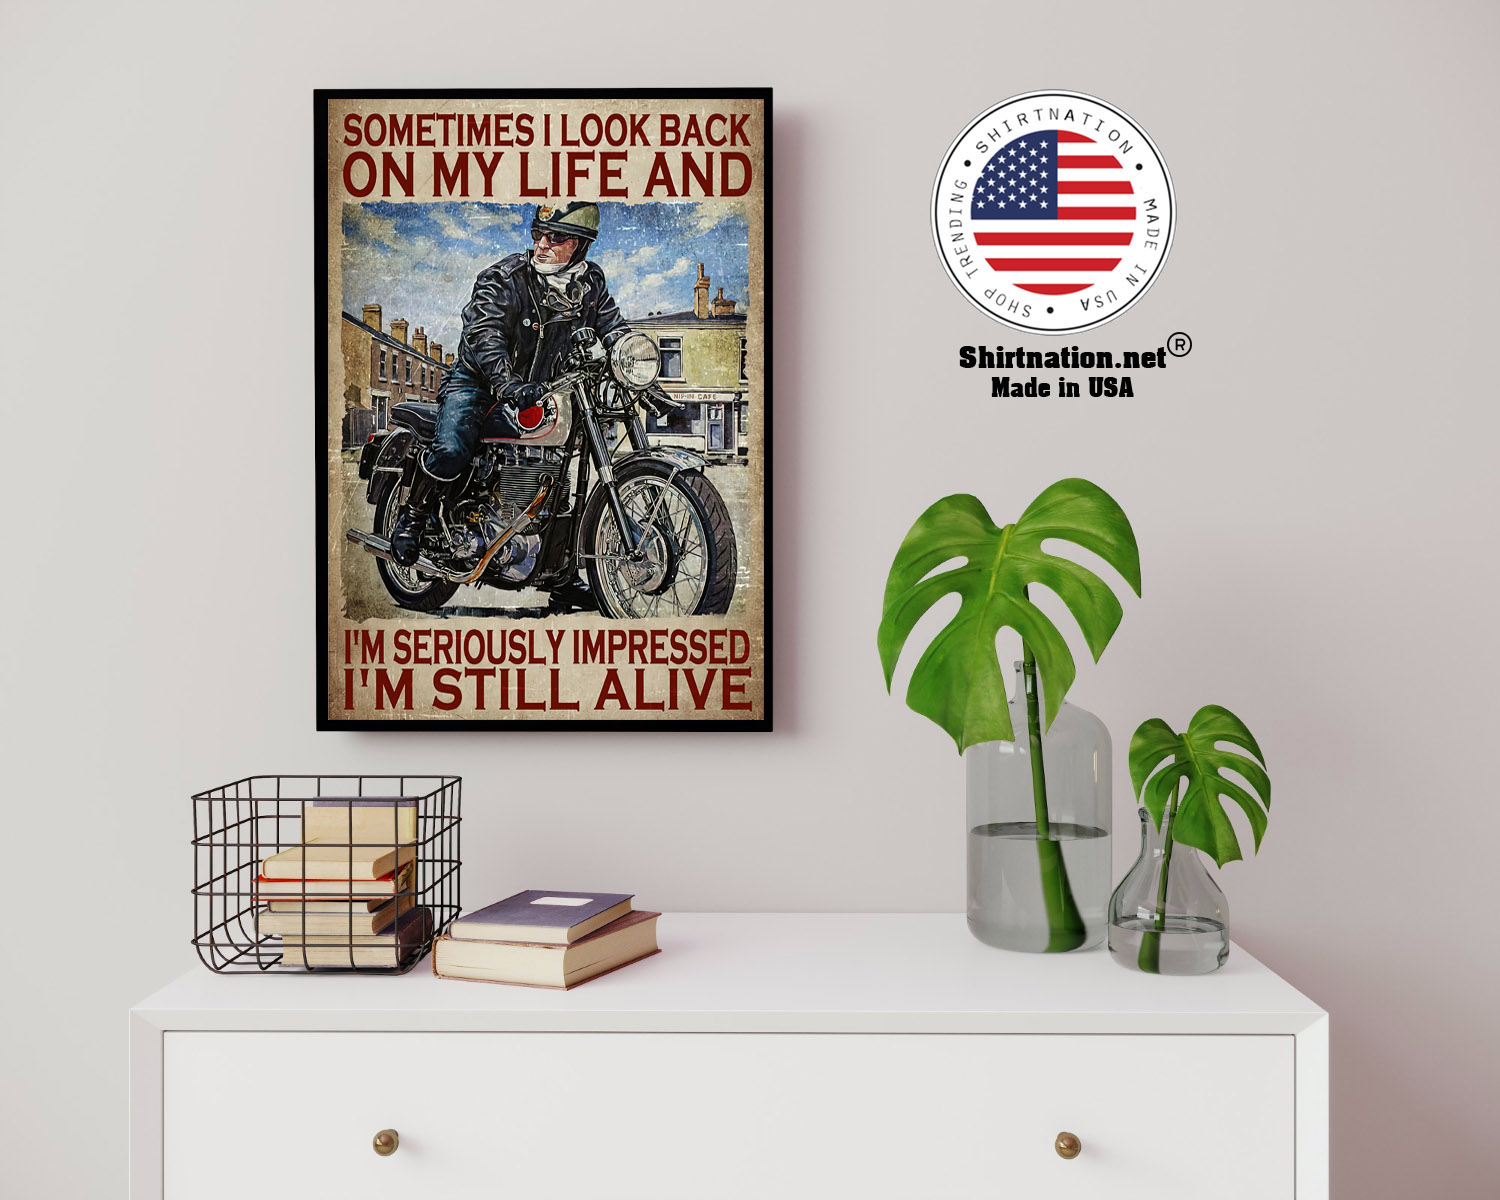 Motorcycles man Sometimes I look back on my life and Im seriously impressed Im still alive poster 14 1